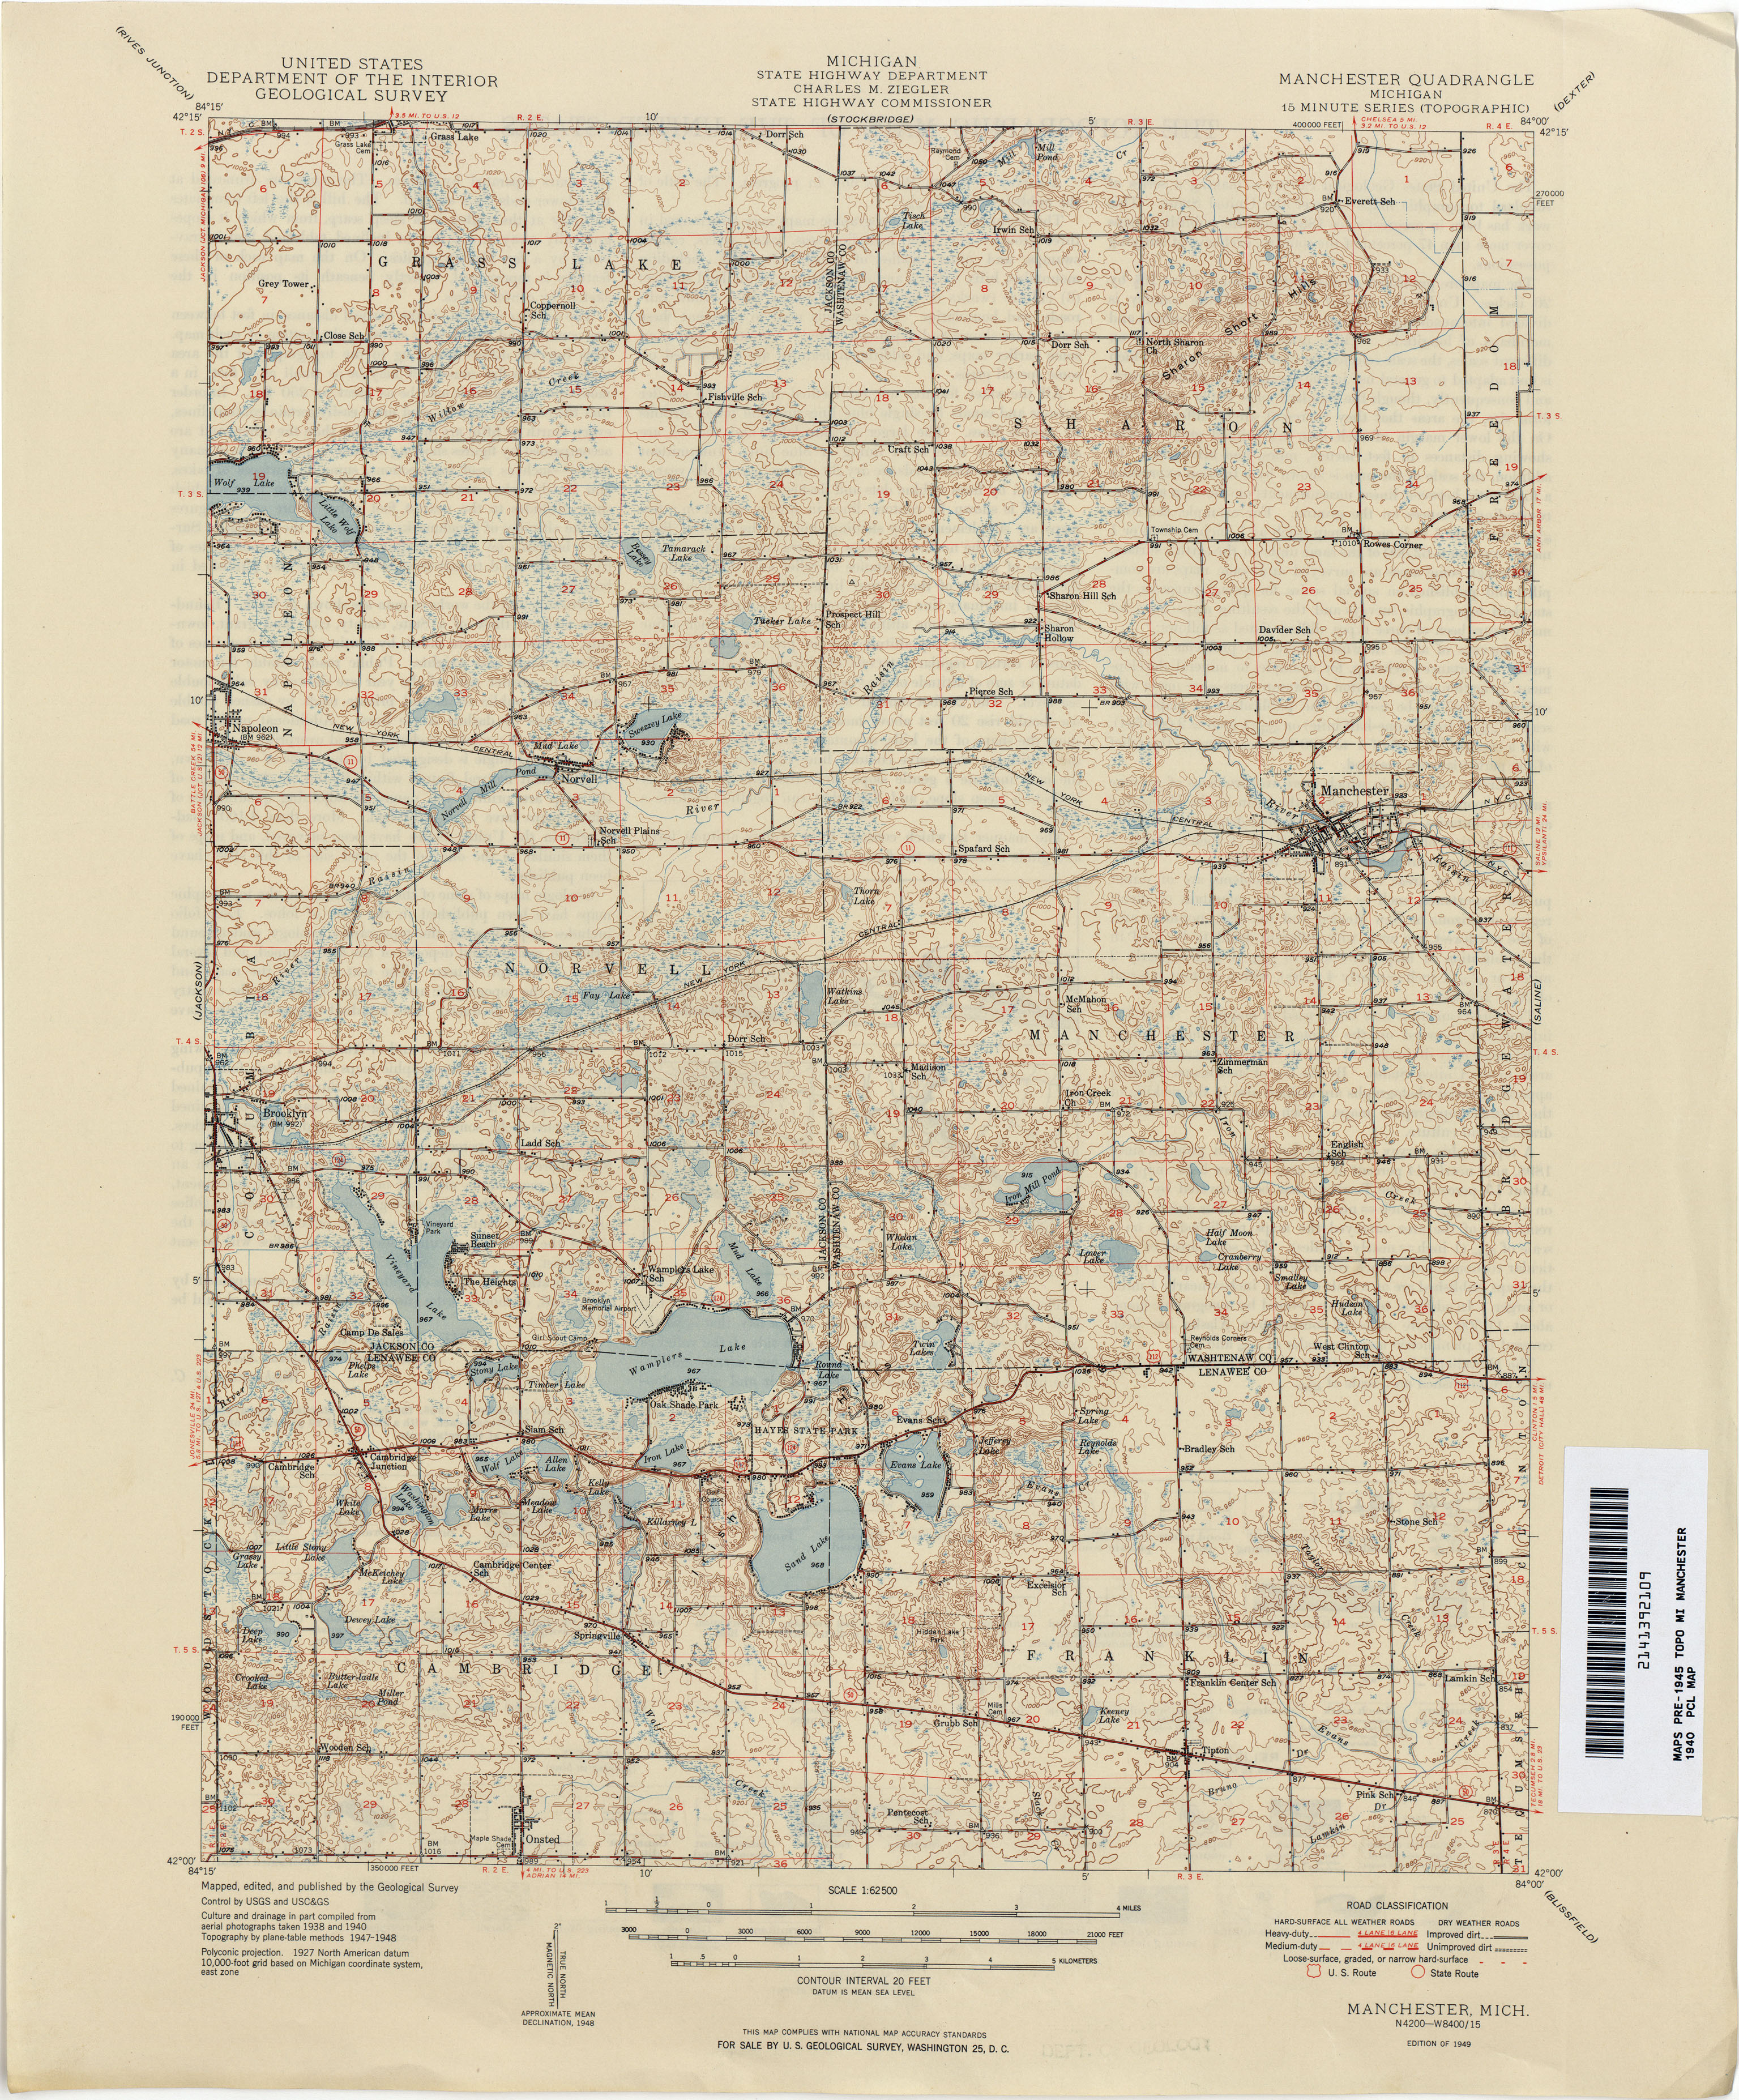 Historical Topographic Maps - Perry-Castañeda Map Collection